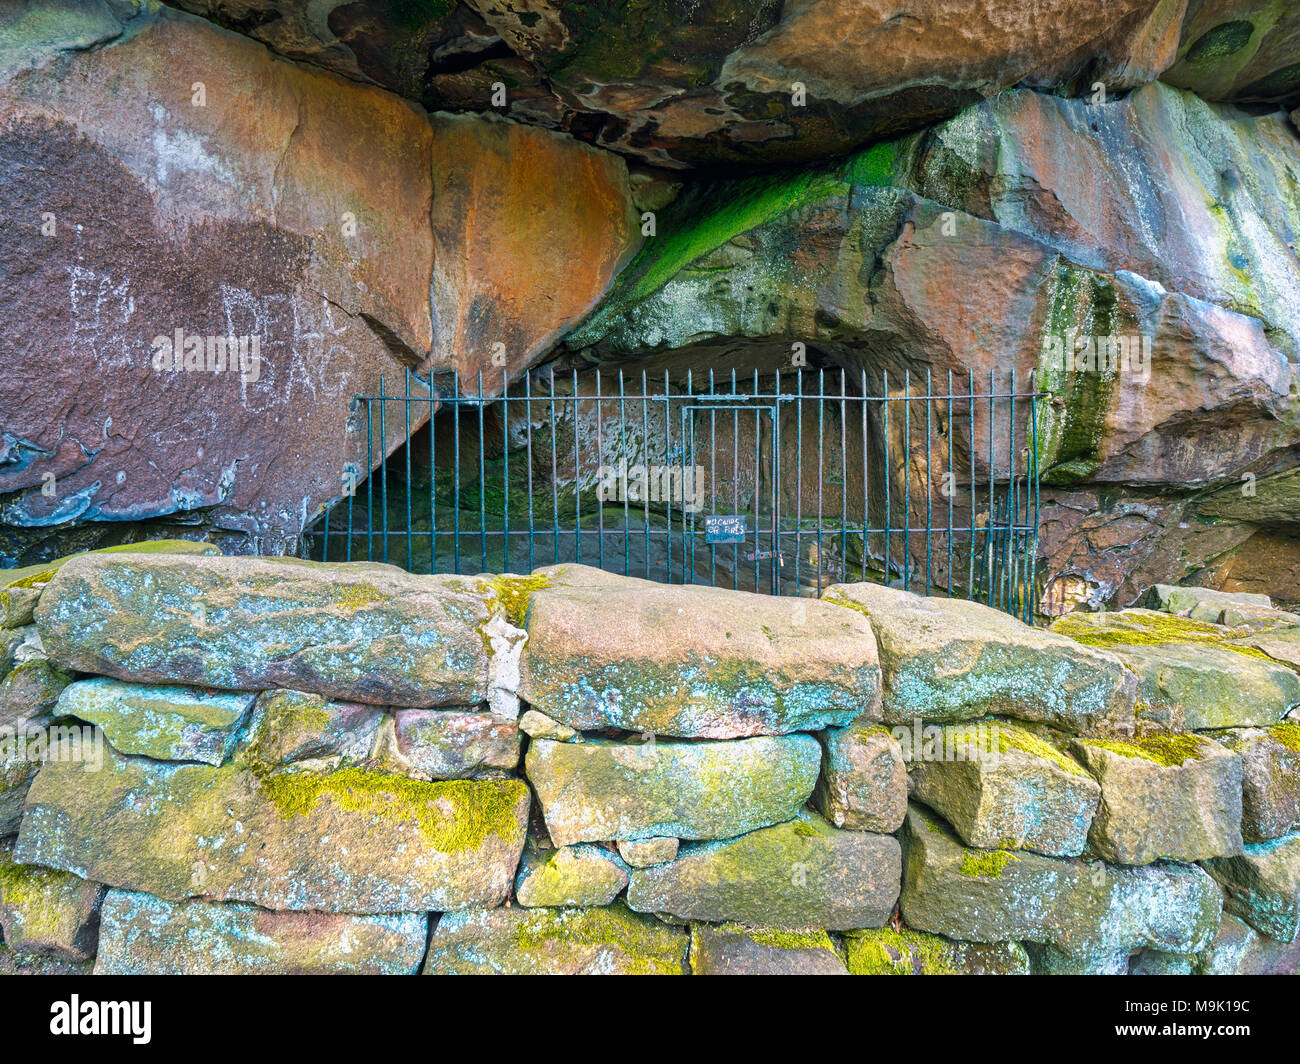 New graffiti scratched into the rocks on the 14th century Hermit's Cave at the base of Cratcliffe Rocks, near the village of Elton, Derbyshire - Stock Image